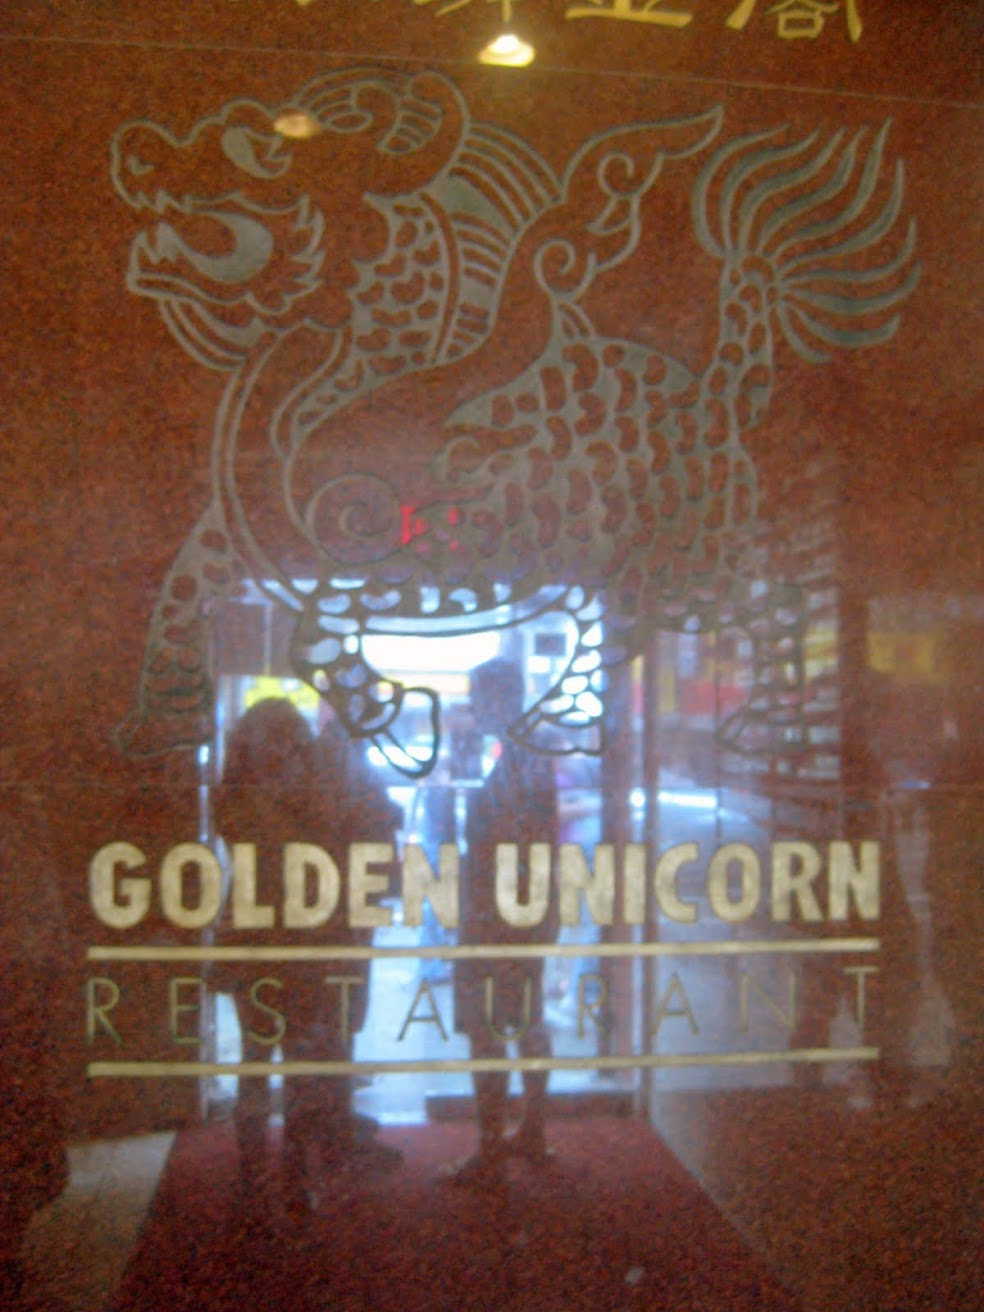 golden unicorn restaurant new york china town